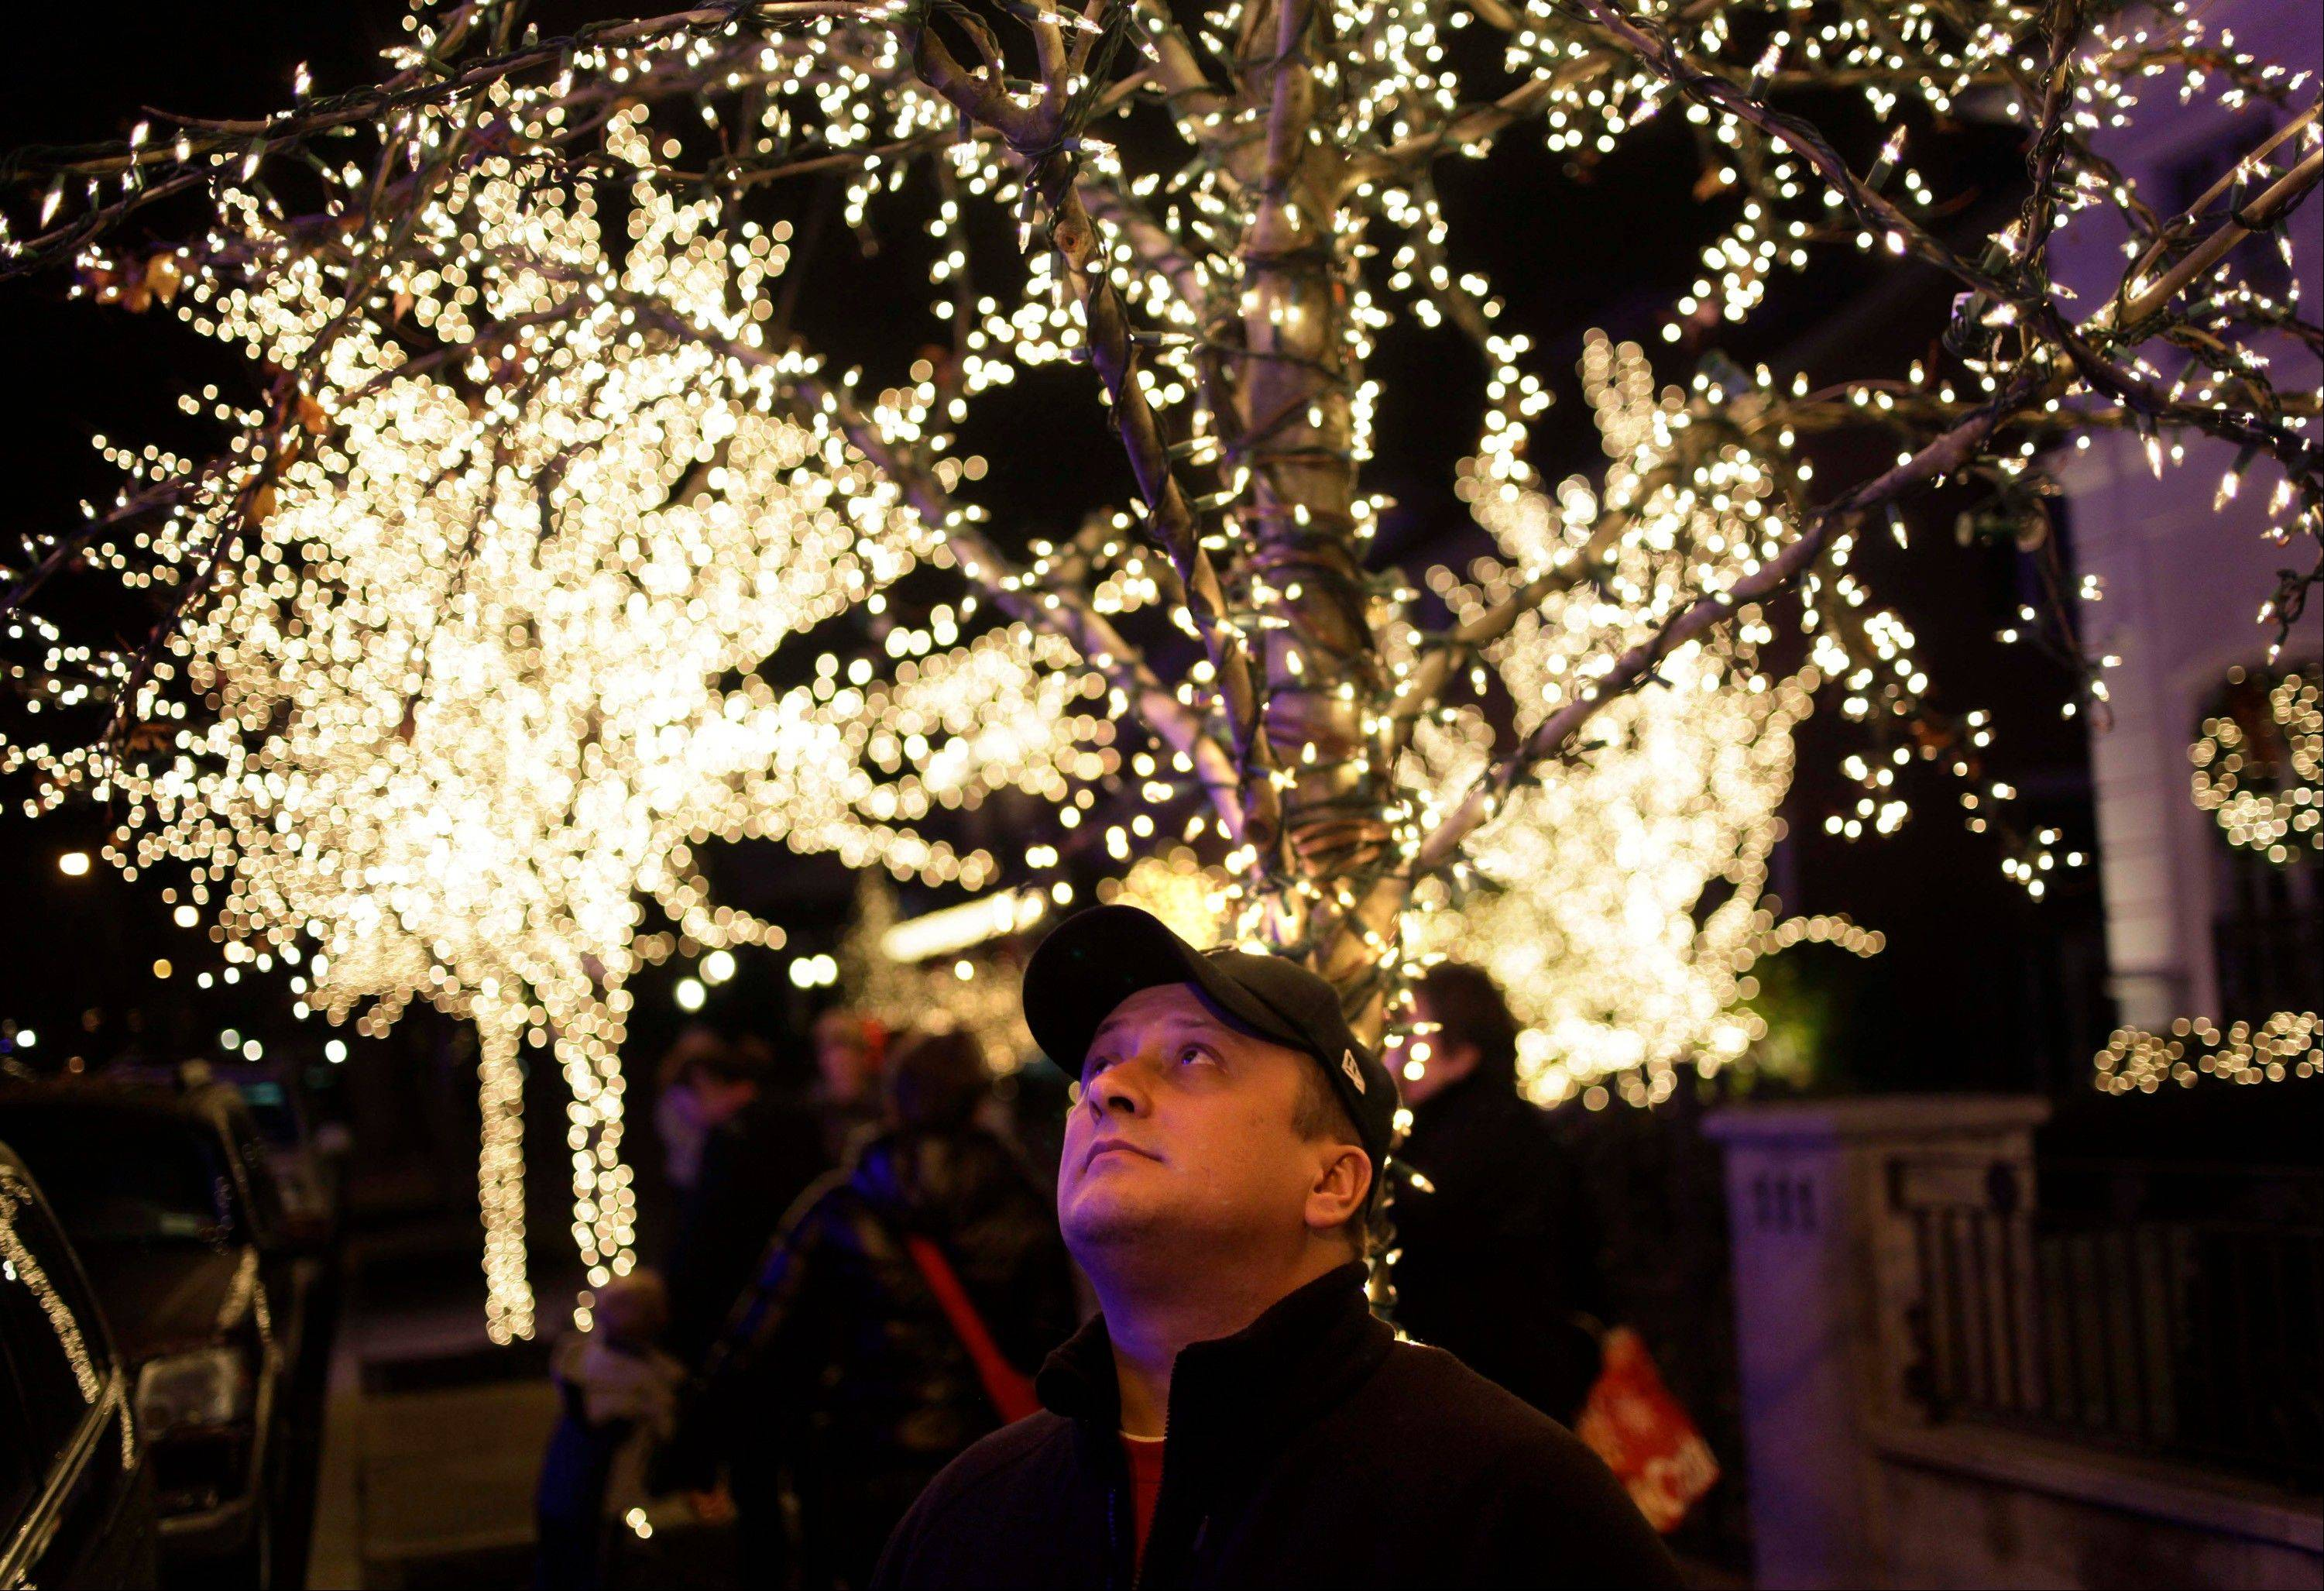 Erik Hall of Rochester, N.Y., looks up at the elaborate holiday displays during a tour in Brooklyn.